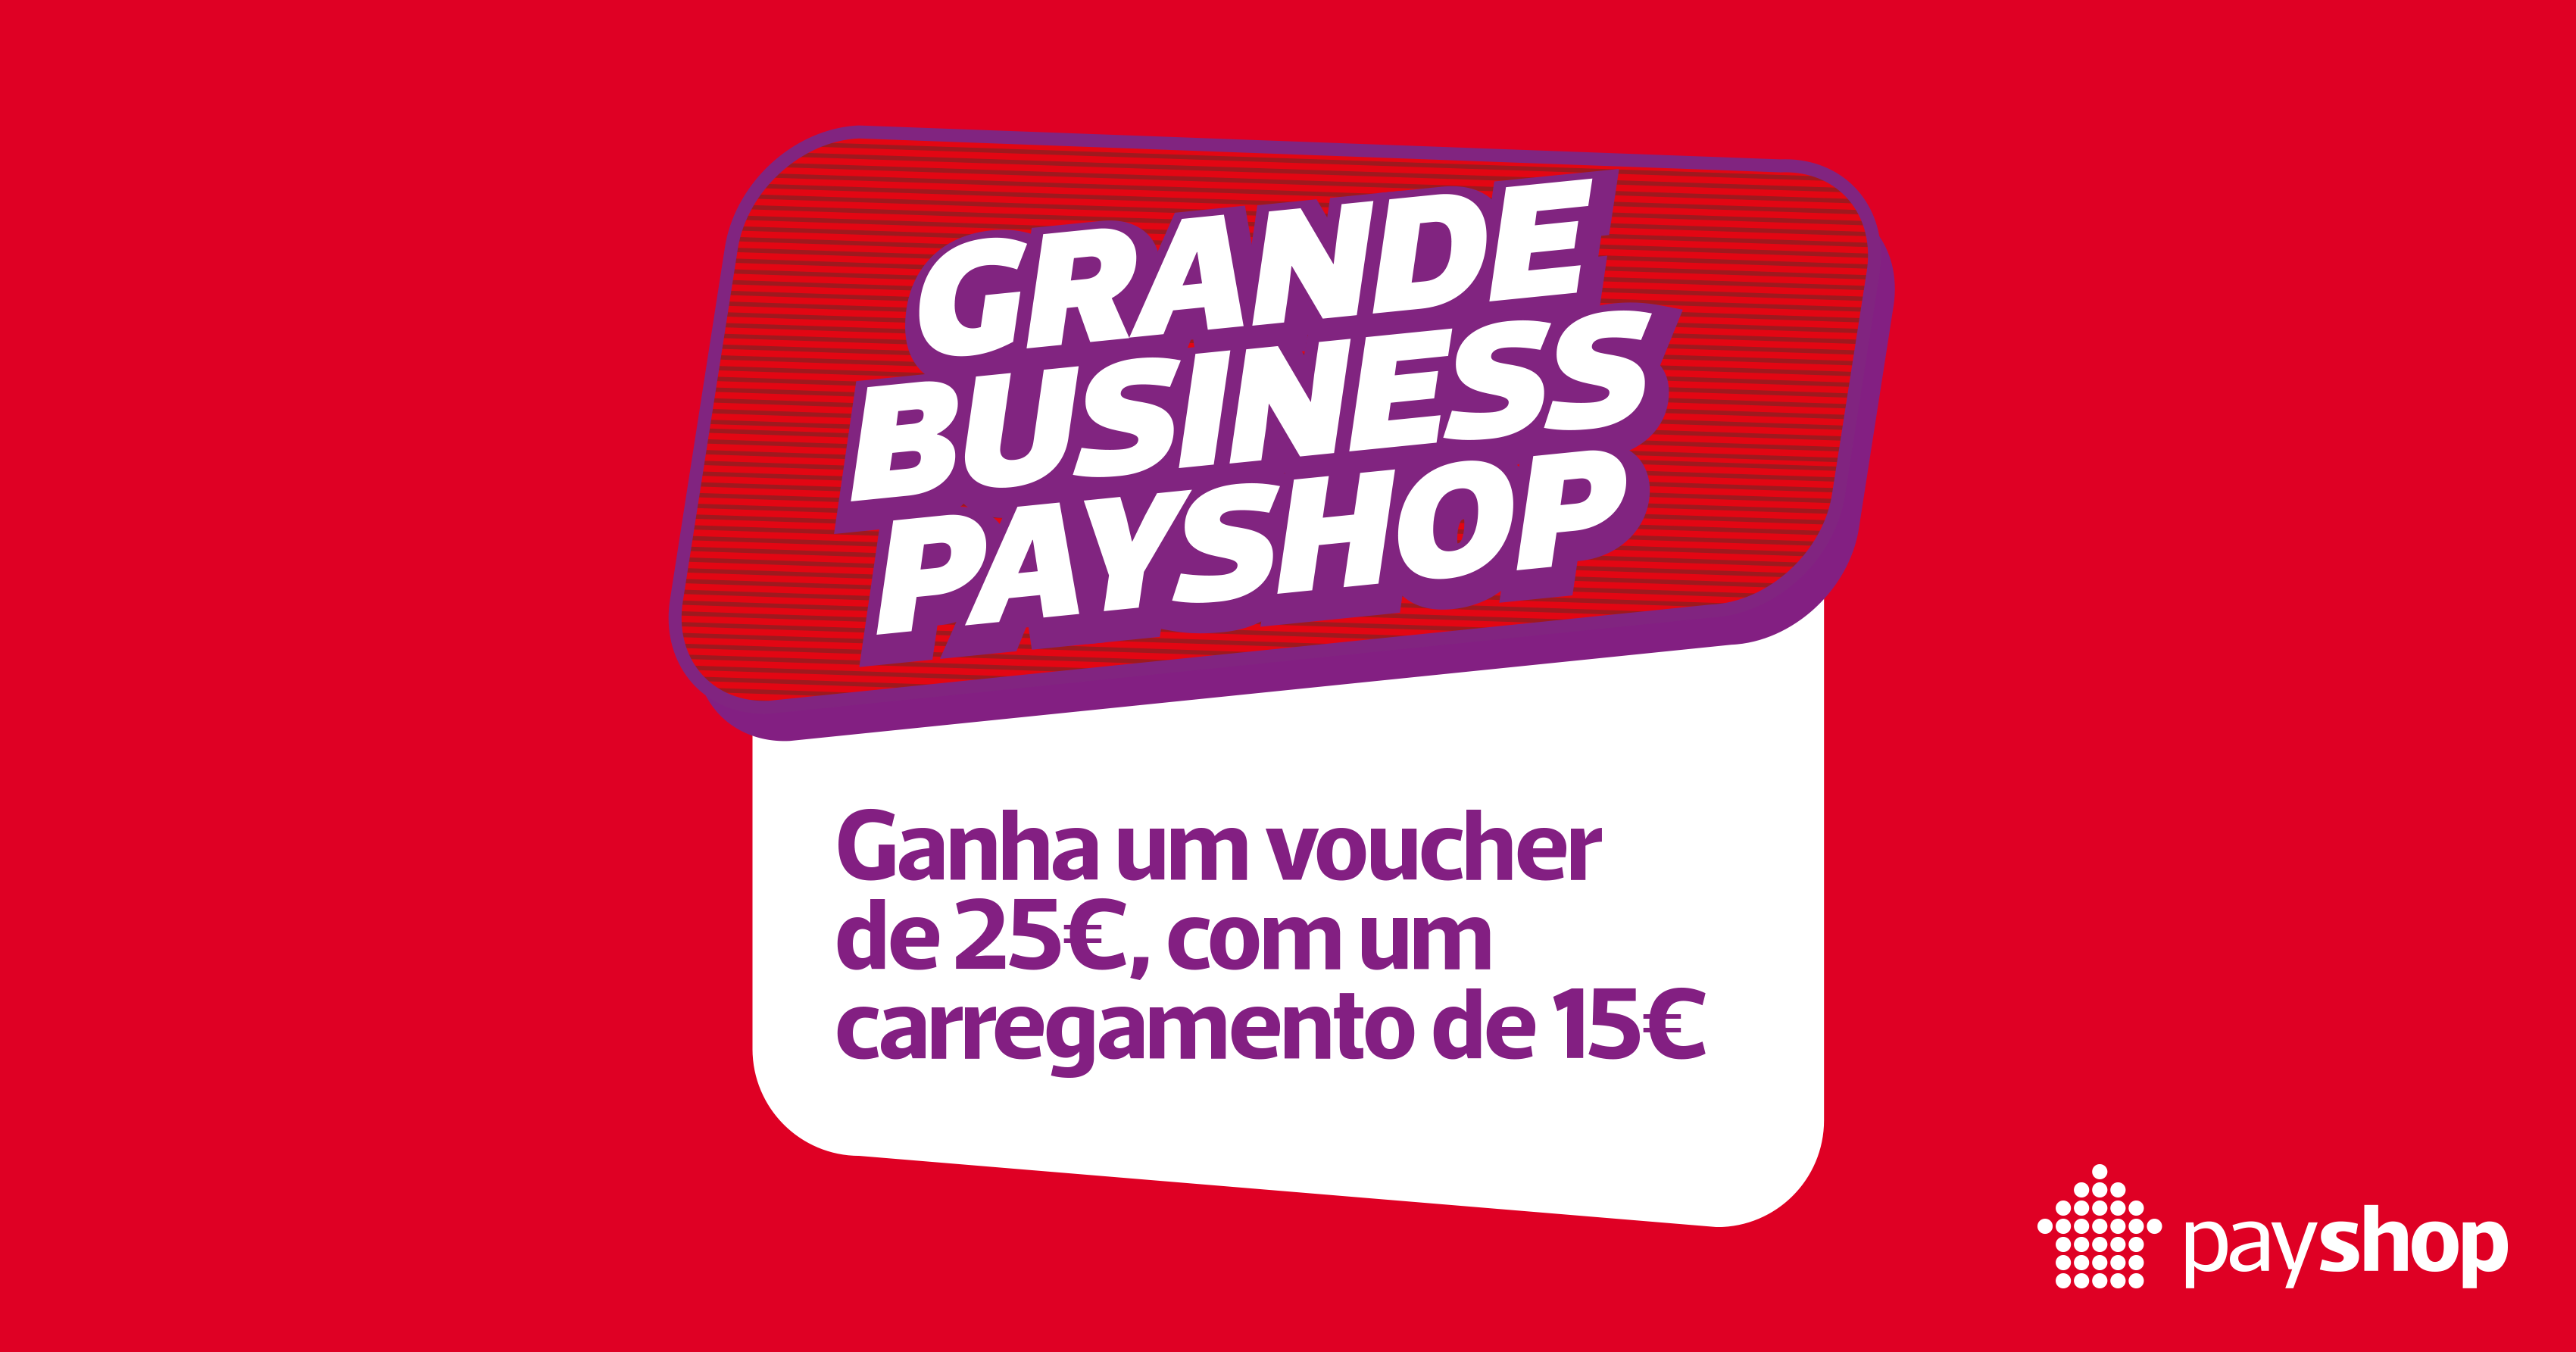 Grande Business Payshop